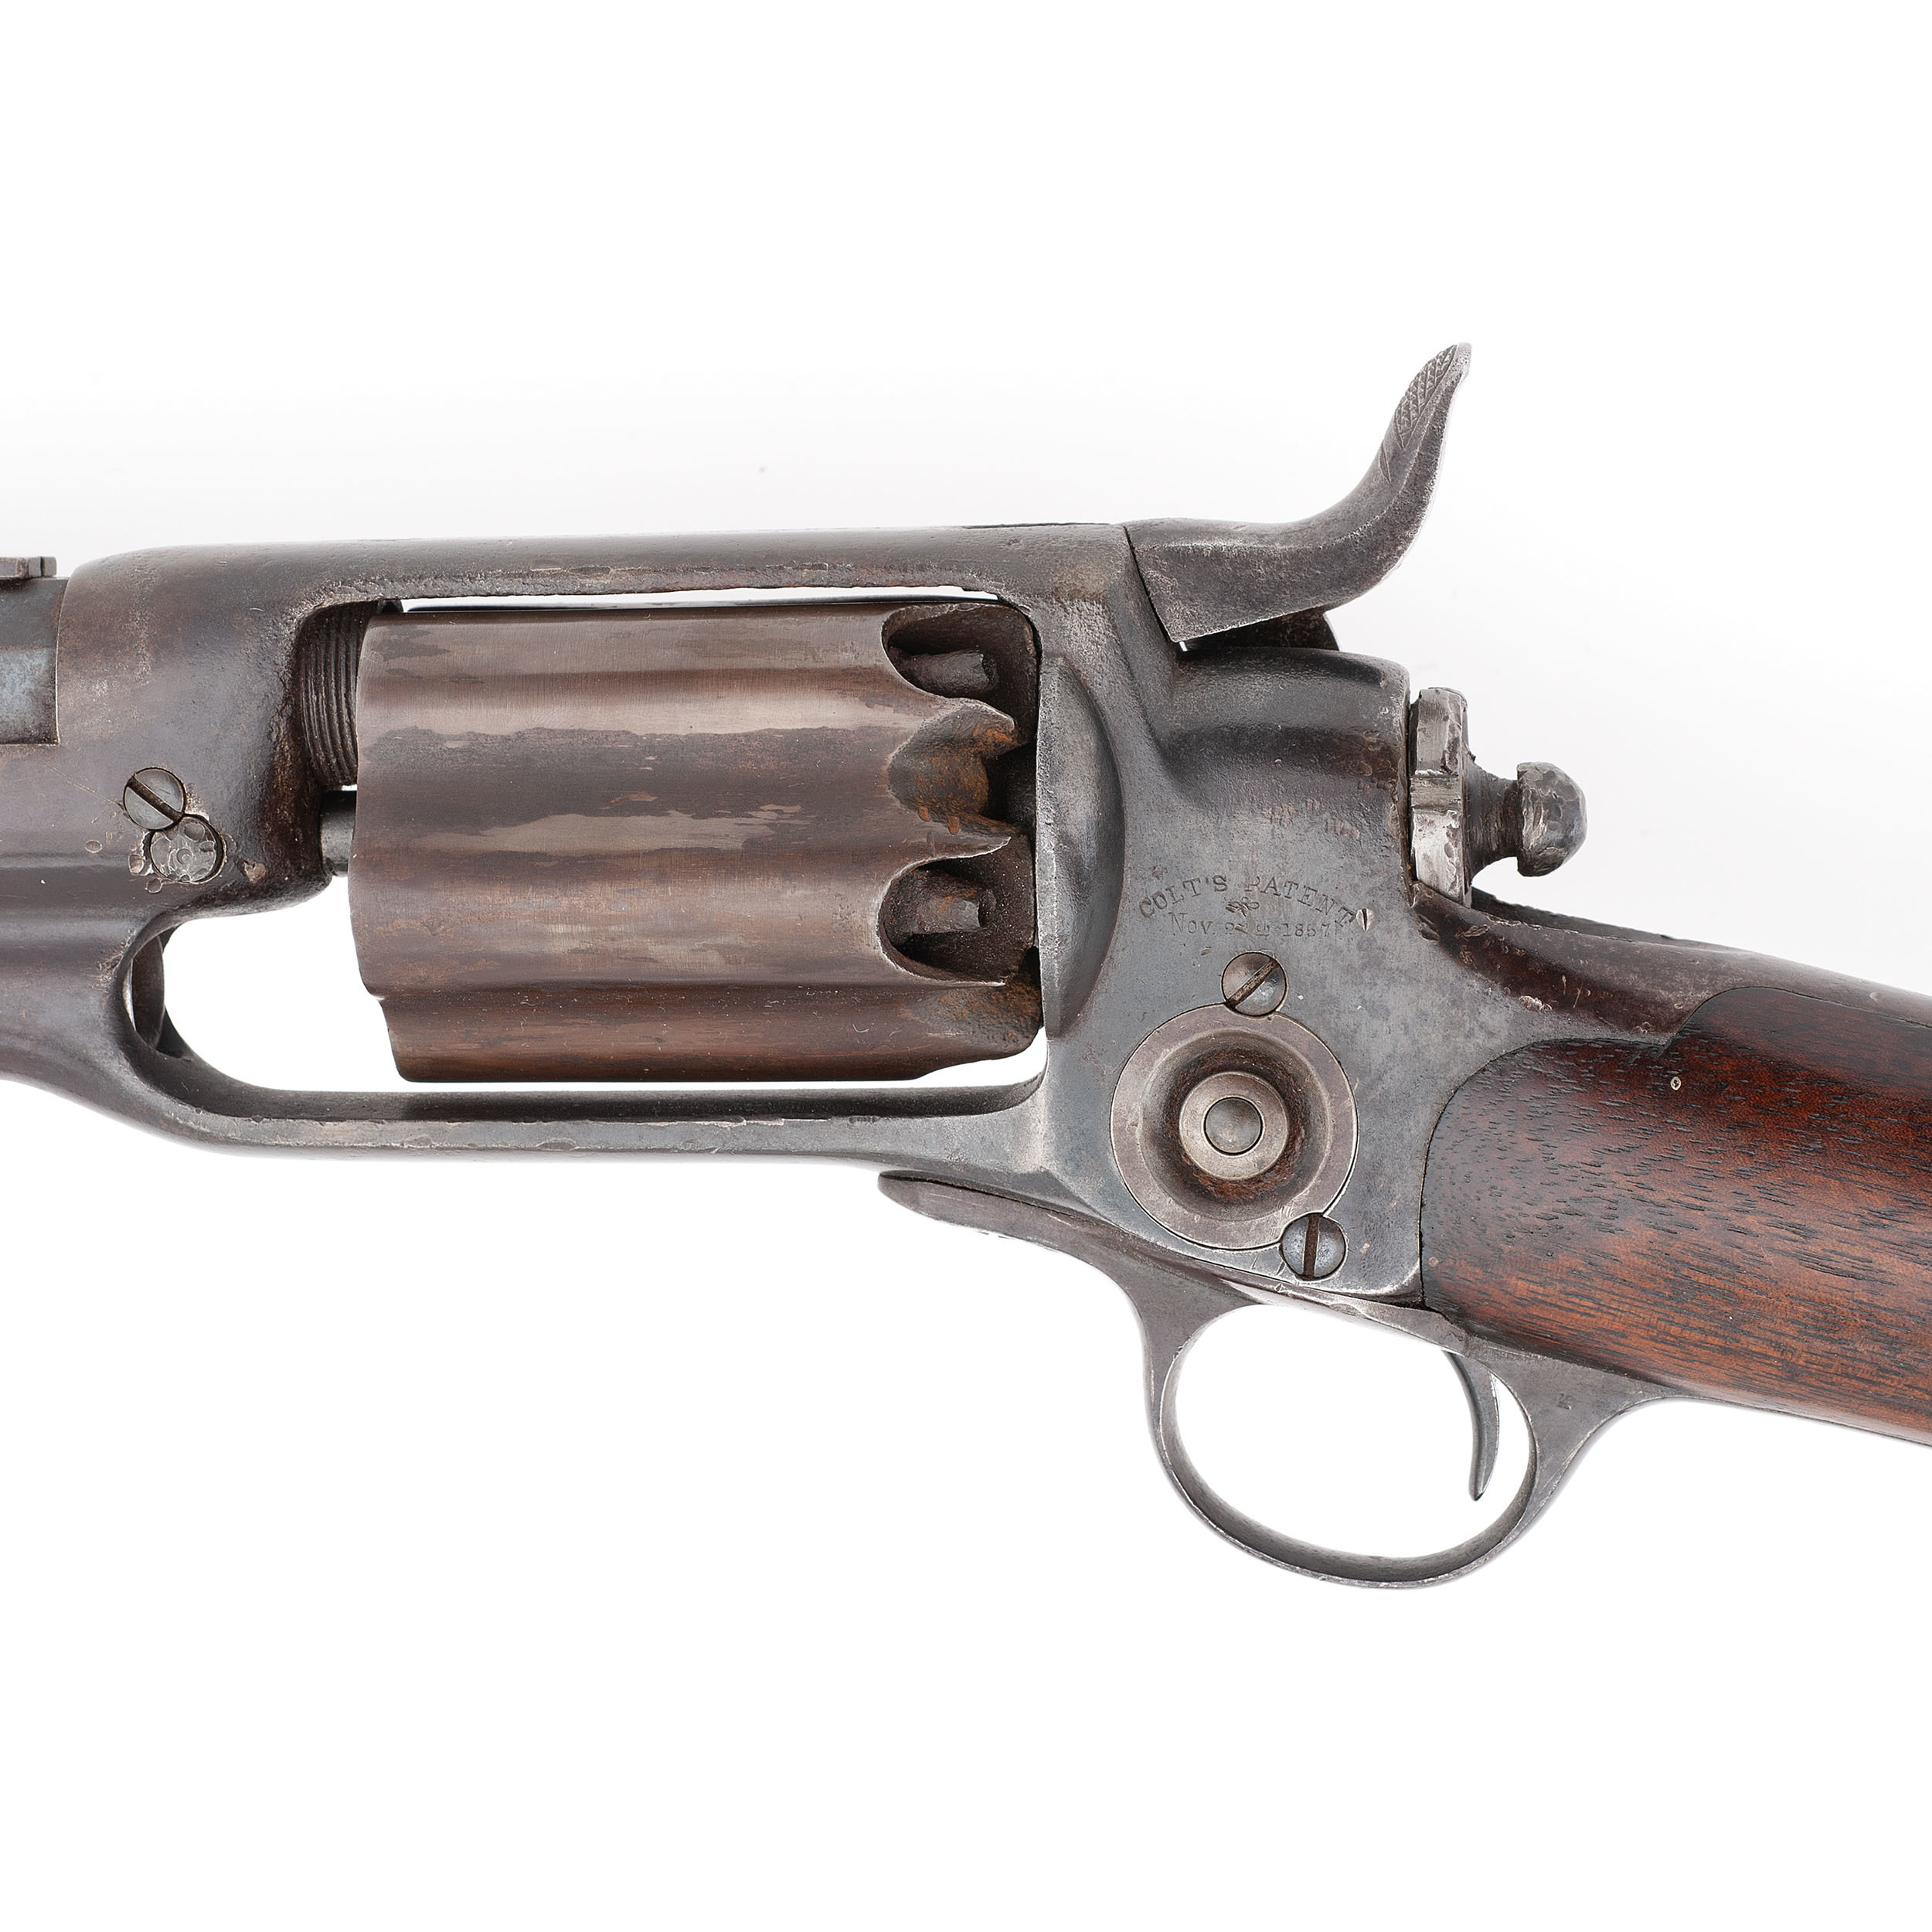 Colt Model 1855 Military Revolving Rifle | Cowan's Auction